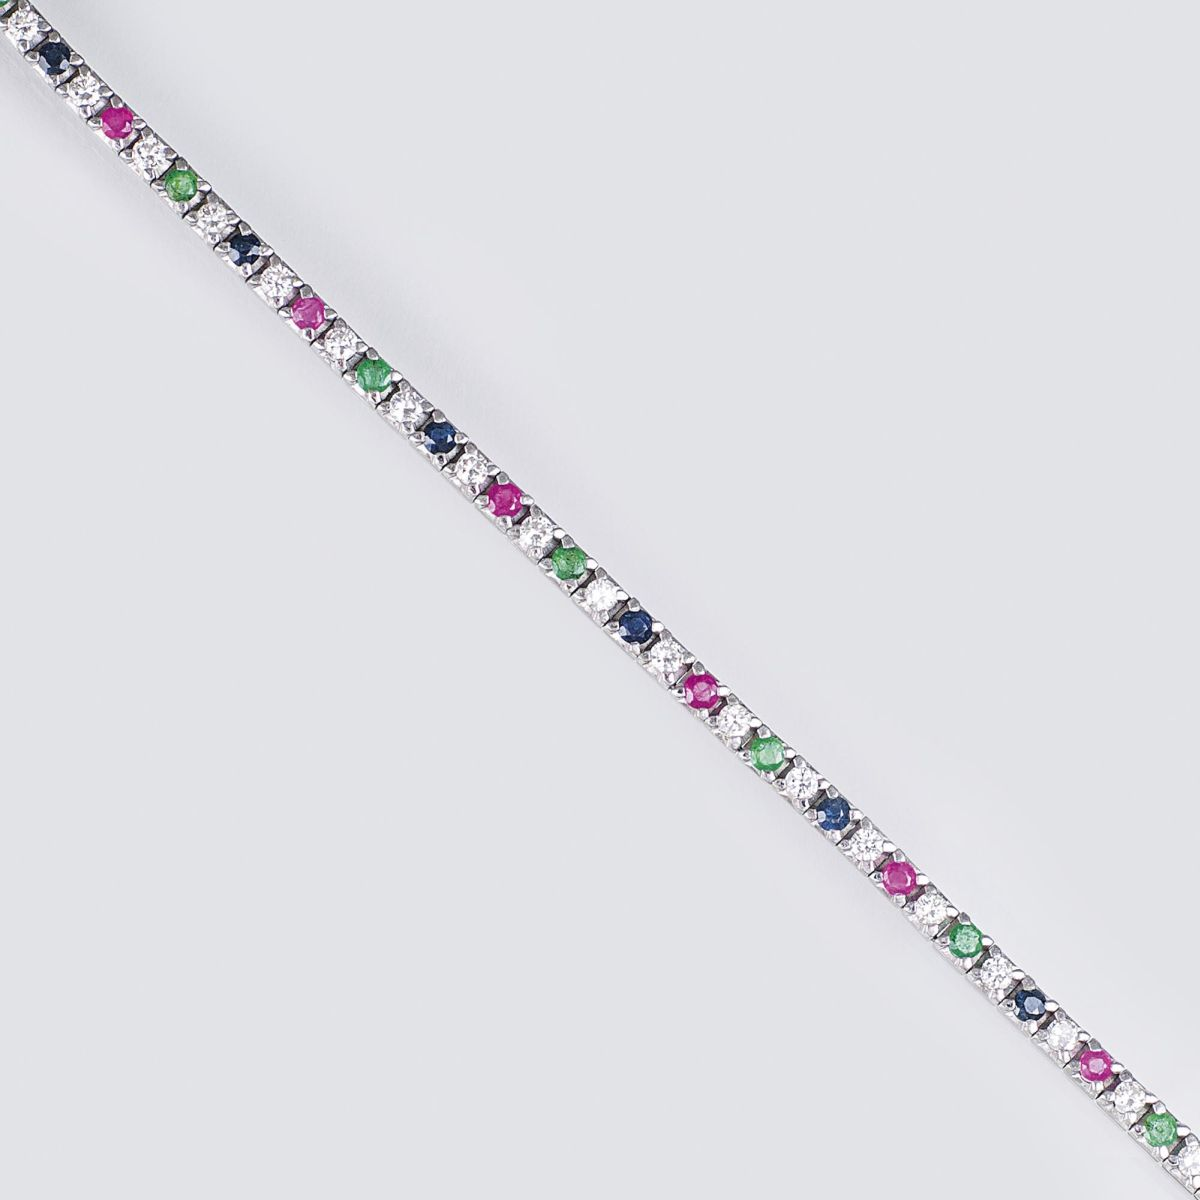 A Bracelet with Emeralds, Sapphires, Rubies and Diamonds